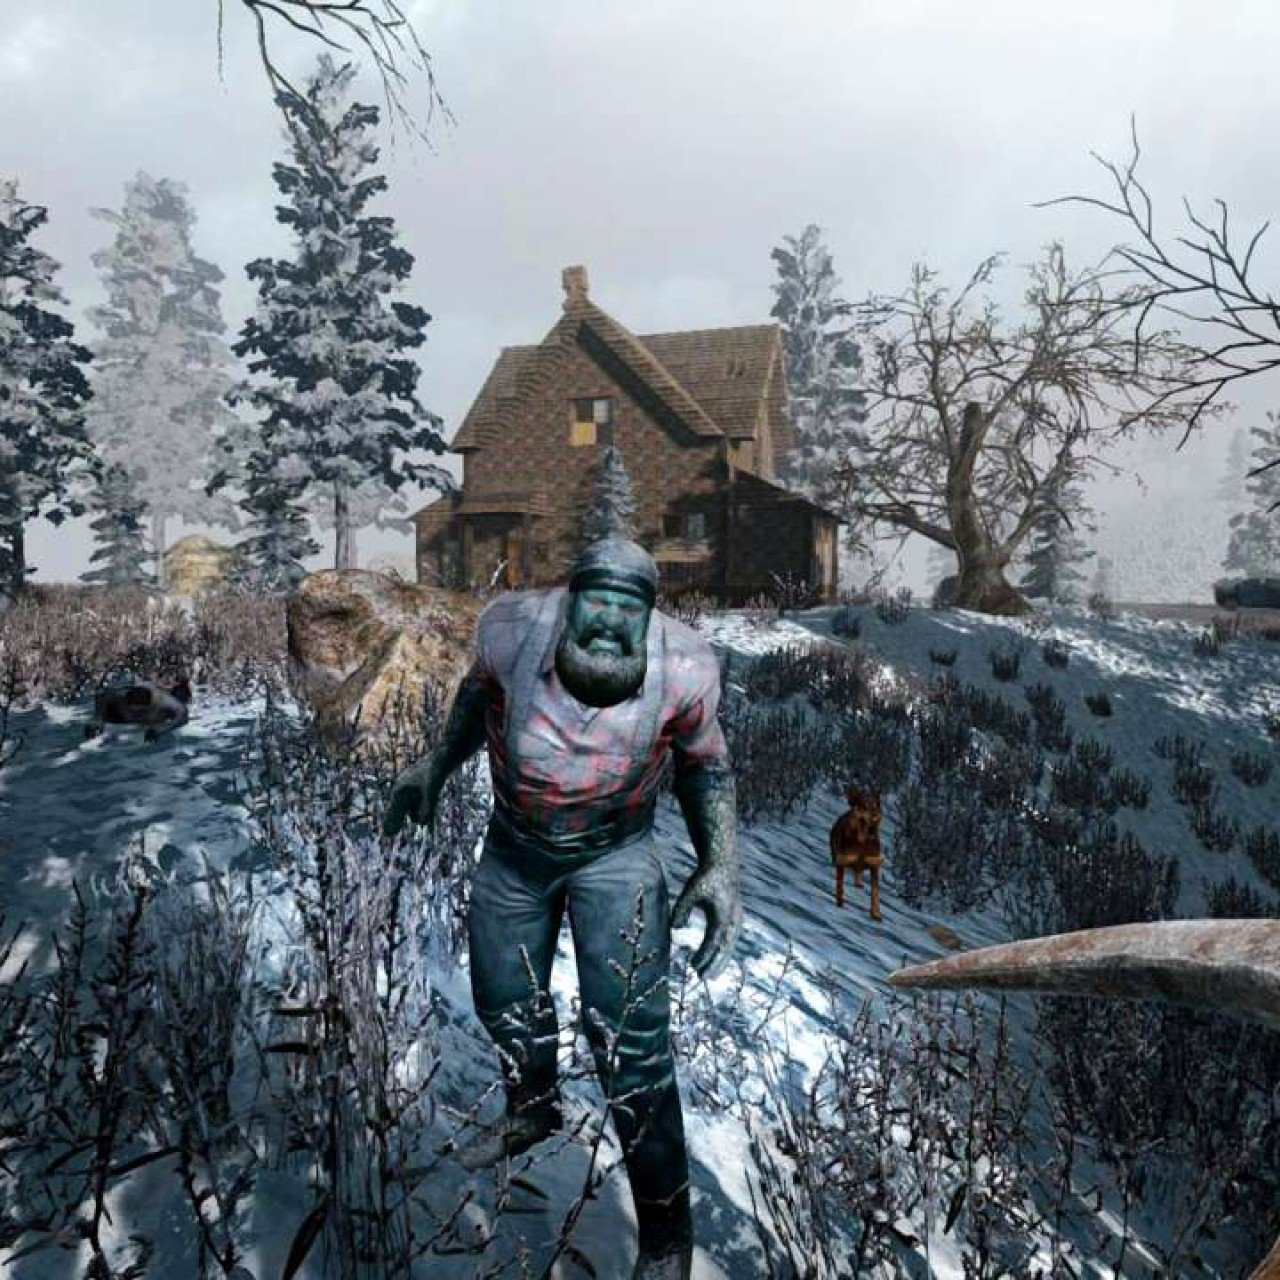 Game review: 7 Days to Die is a disappointing survival game that